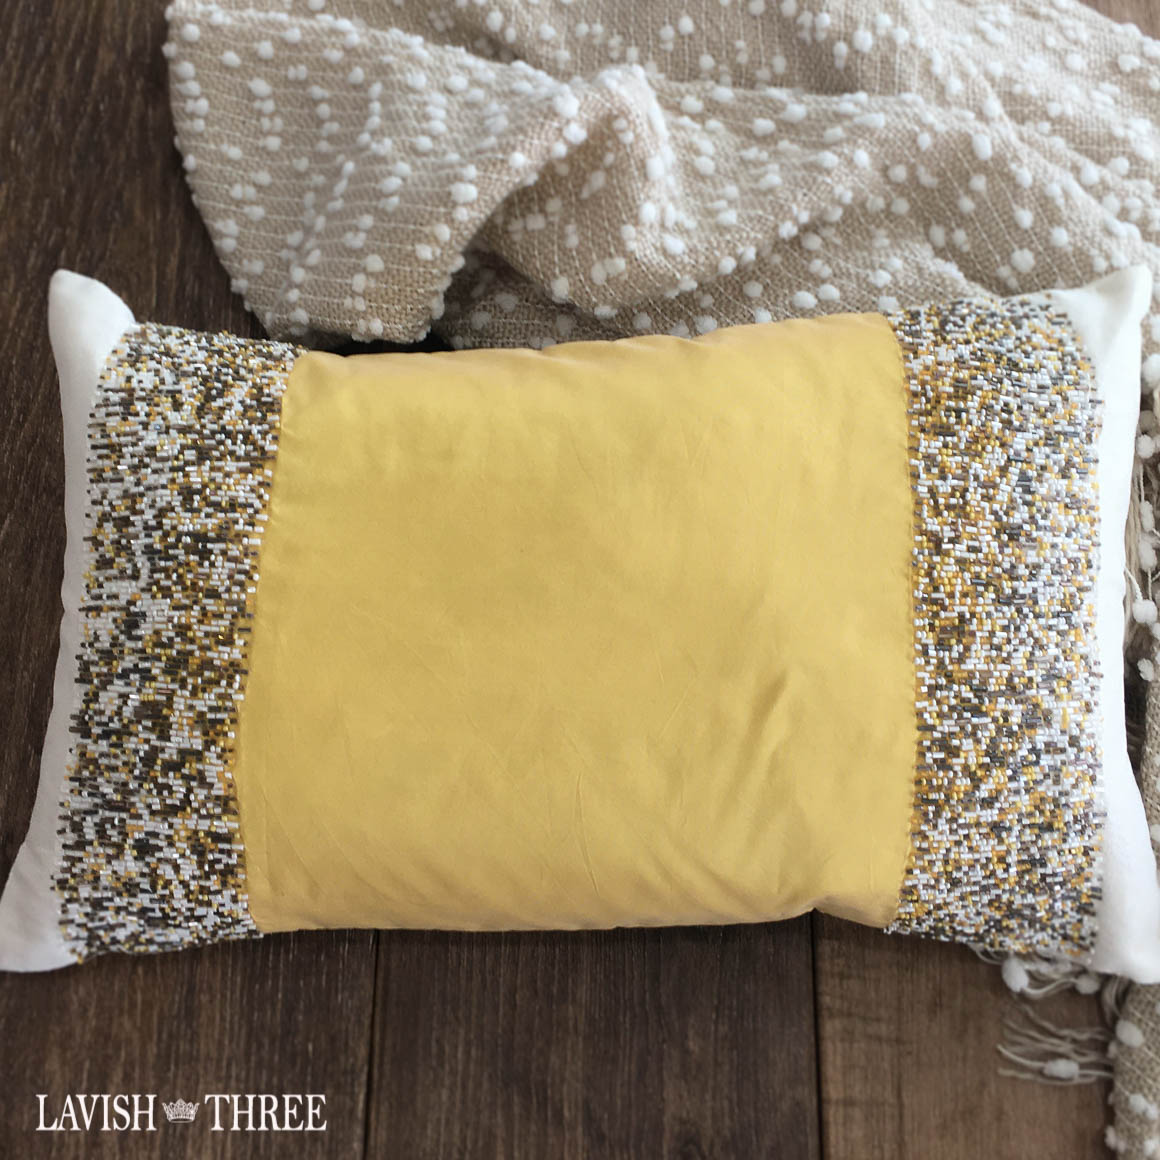 Yellow white brown beaded oblong throw accent pillow Lavish three 3